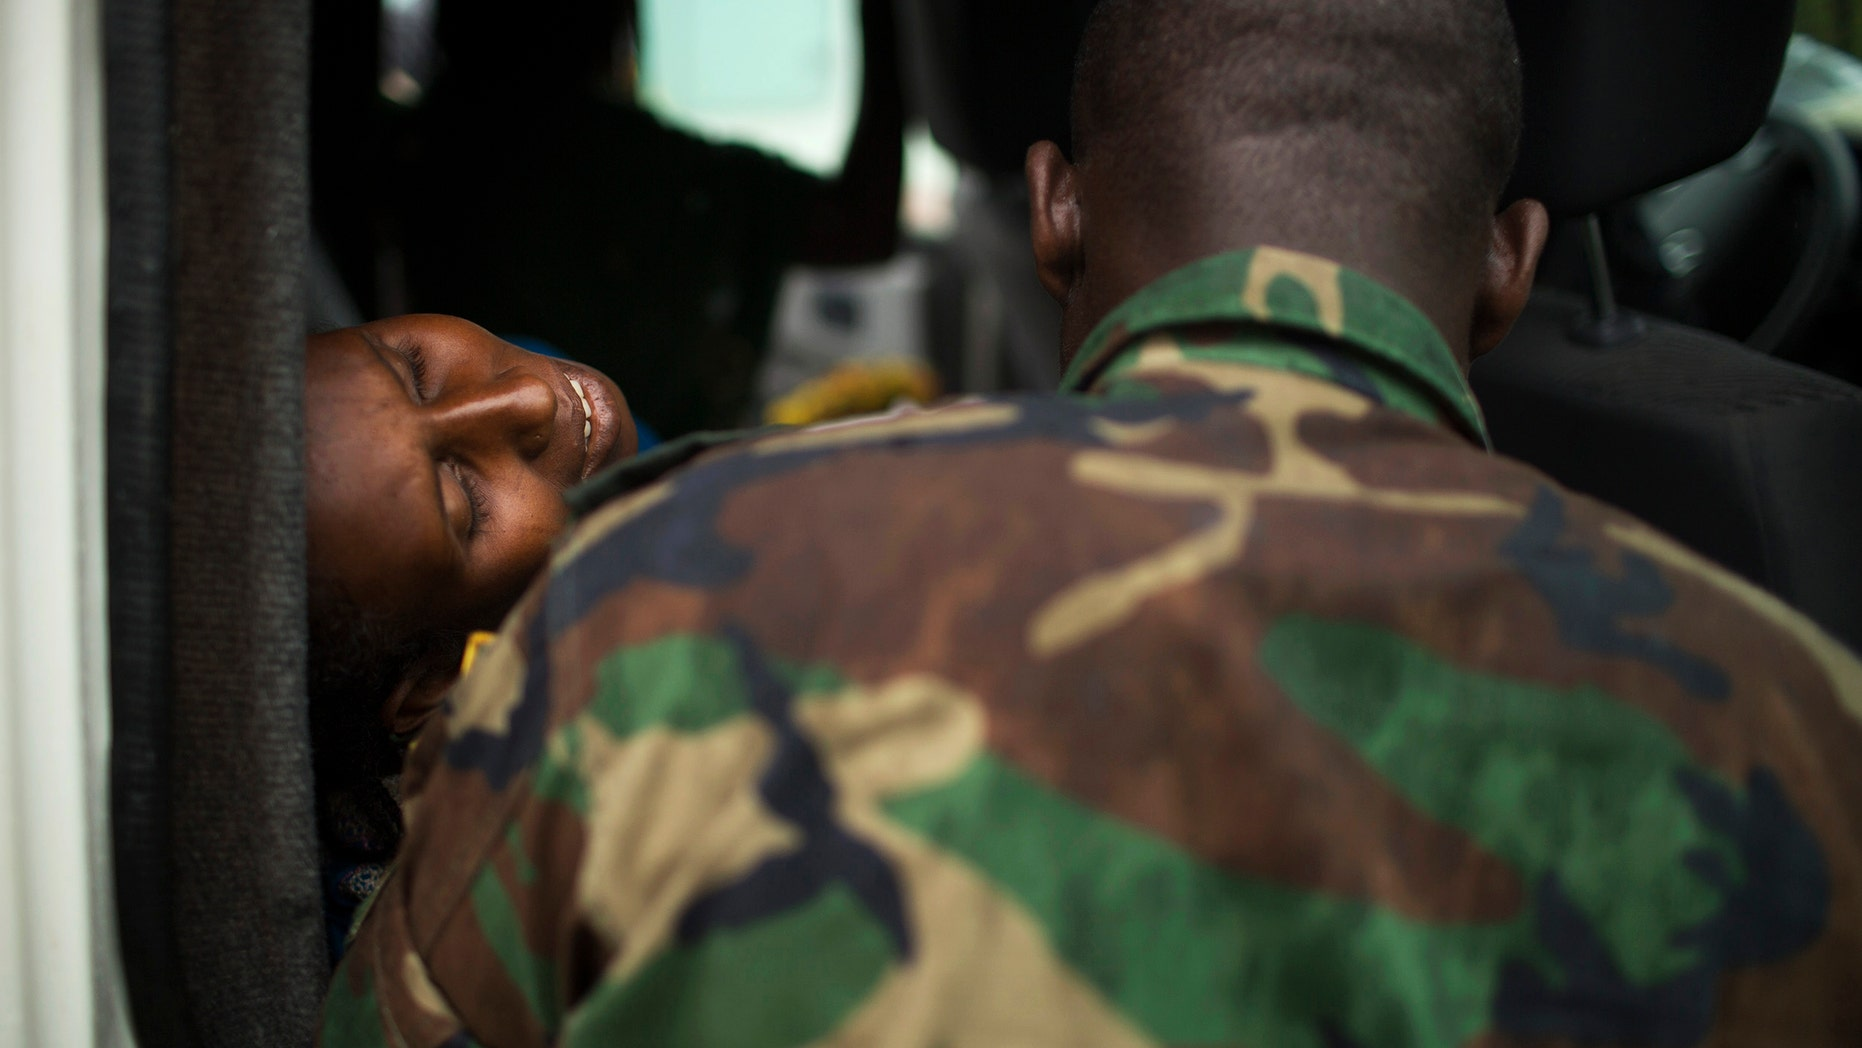 A woman gives birth to twins in the back of a UNICEF vehicle assisted by a medic as she travels in an armed peacekeeping convoy from the African Union operation in CAR (MISCA) escorting about one thousand internally displaced Muslims the northern towns of Kabo and Sido on the border with Chad April 28, 2014. The woman was one of three pregnant wives of a man that are travelling in the convoy. REUTERS/Siegfried Modola (CENTRAL AFRICAN REPUBLIC - Tags: POLITICS CIVIL UNREST CONFLICT RELIGION) - RTR3MZOR